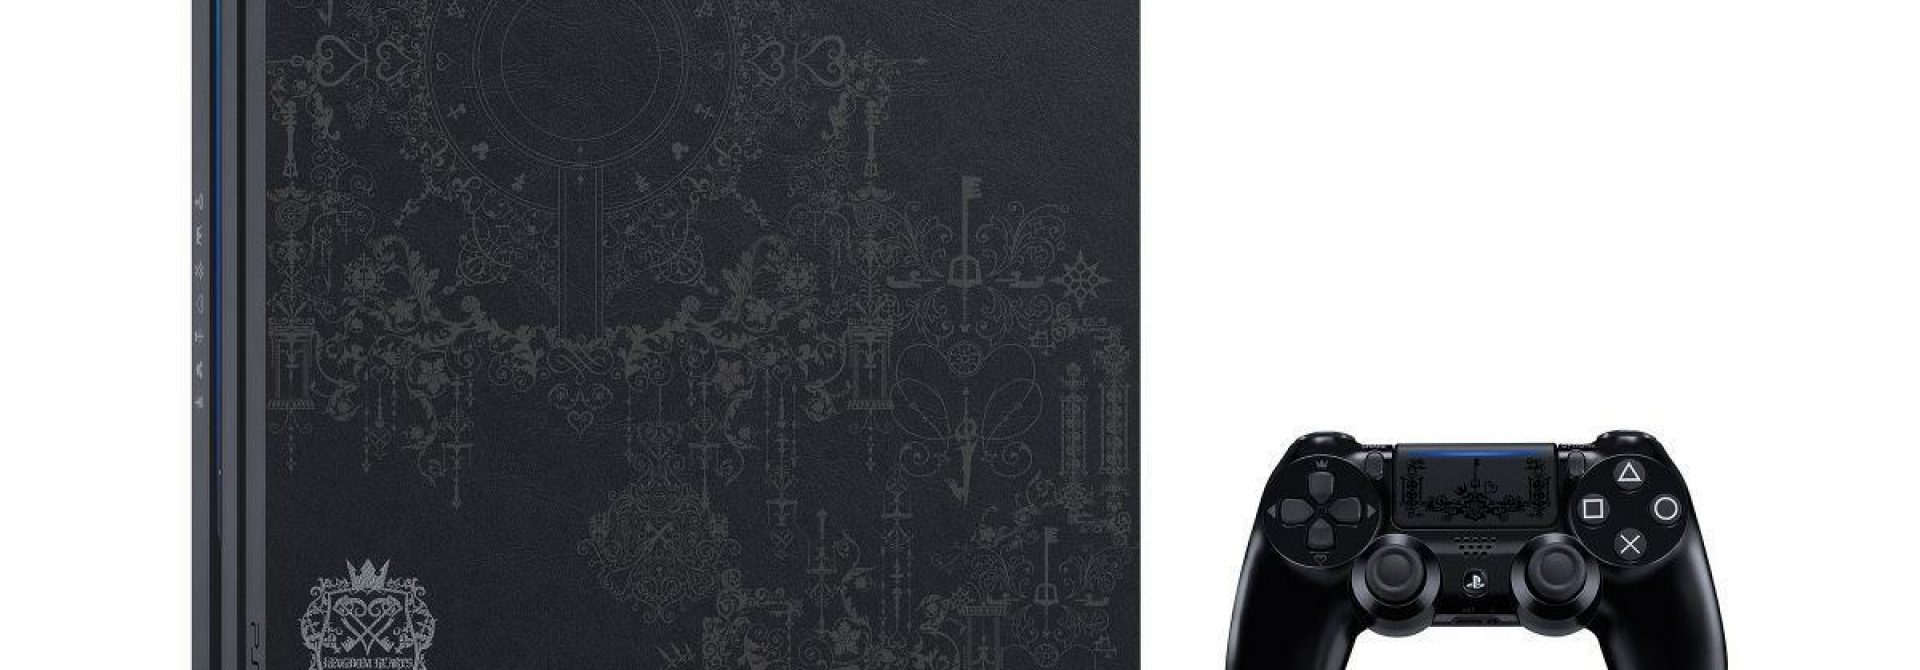 Check Out This Kingdom Hearts 3 Themed Playstation 4